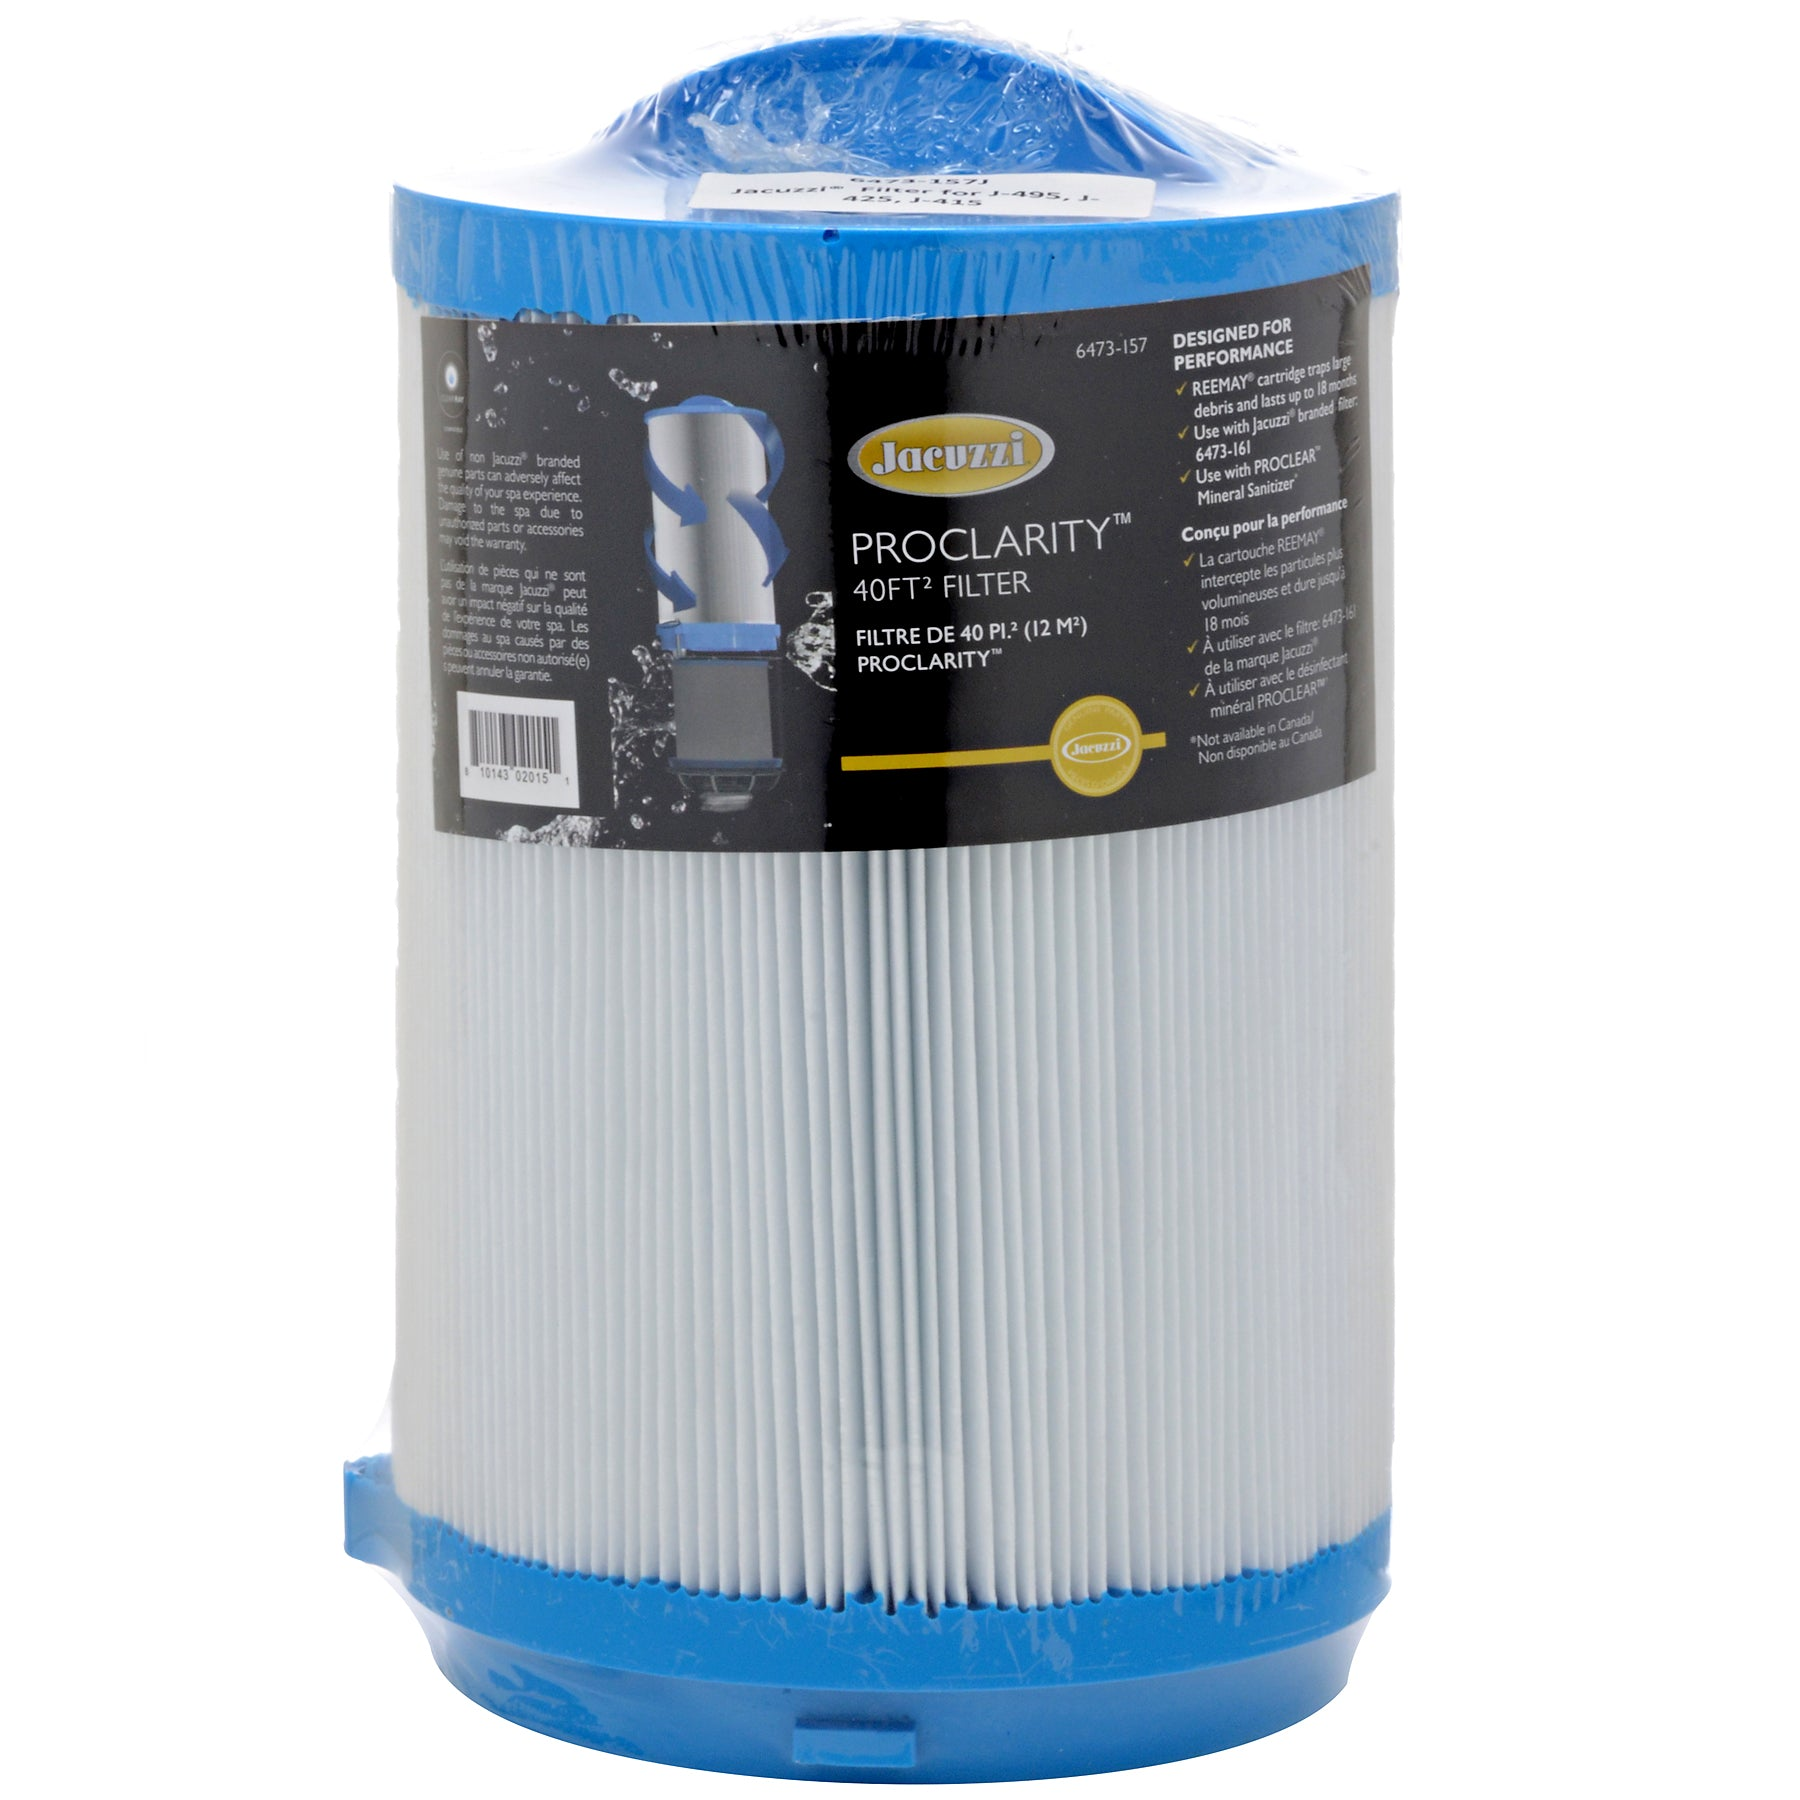 Jacuzzi® PROCLARITY® 40 sq. ft. Primary Filter, 6473-157J